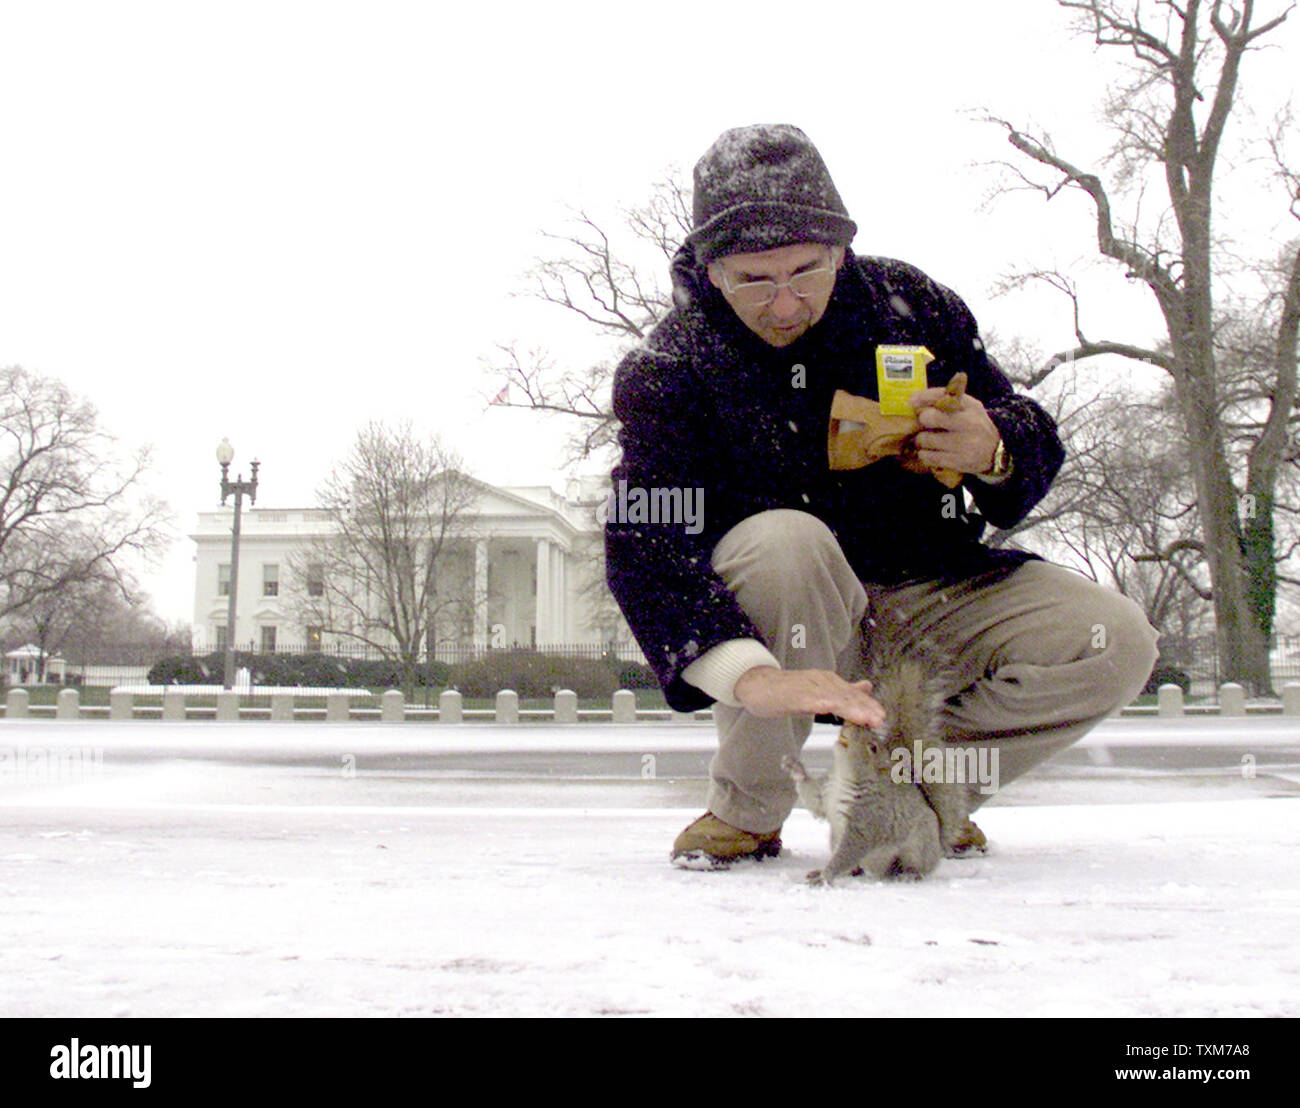 WAP2000011801 - 18 JANUARY 2000 - WASHINGTON, DC, USA: A tourist stoops to pet a squirrel in Lafayette Park in front of the White House, January 18. The Washington area received its first snow fall of the season.  jr/jr/Terry Schmitt - Stock Image